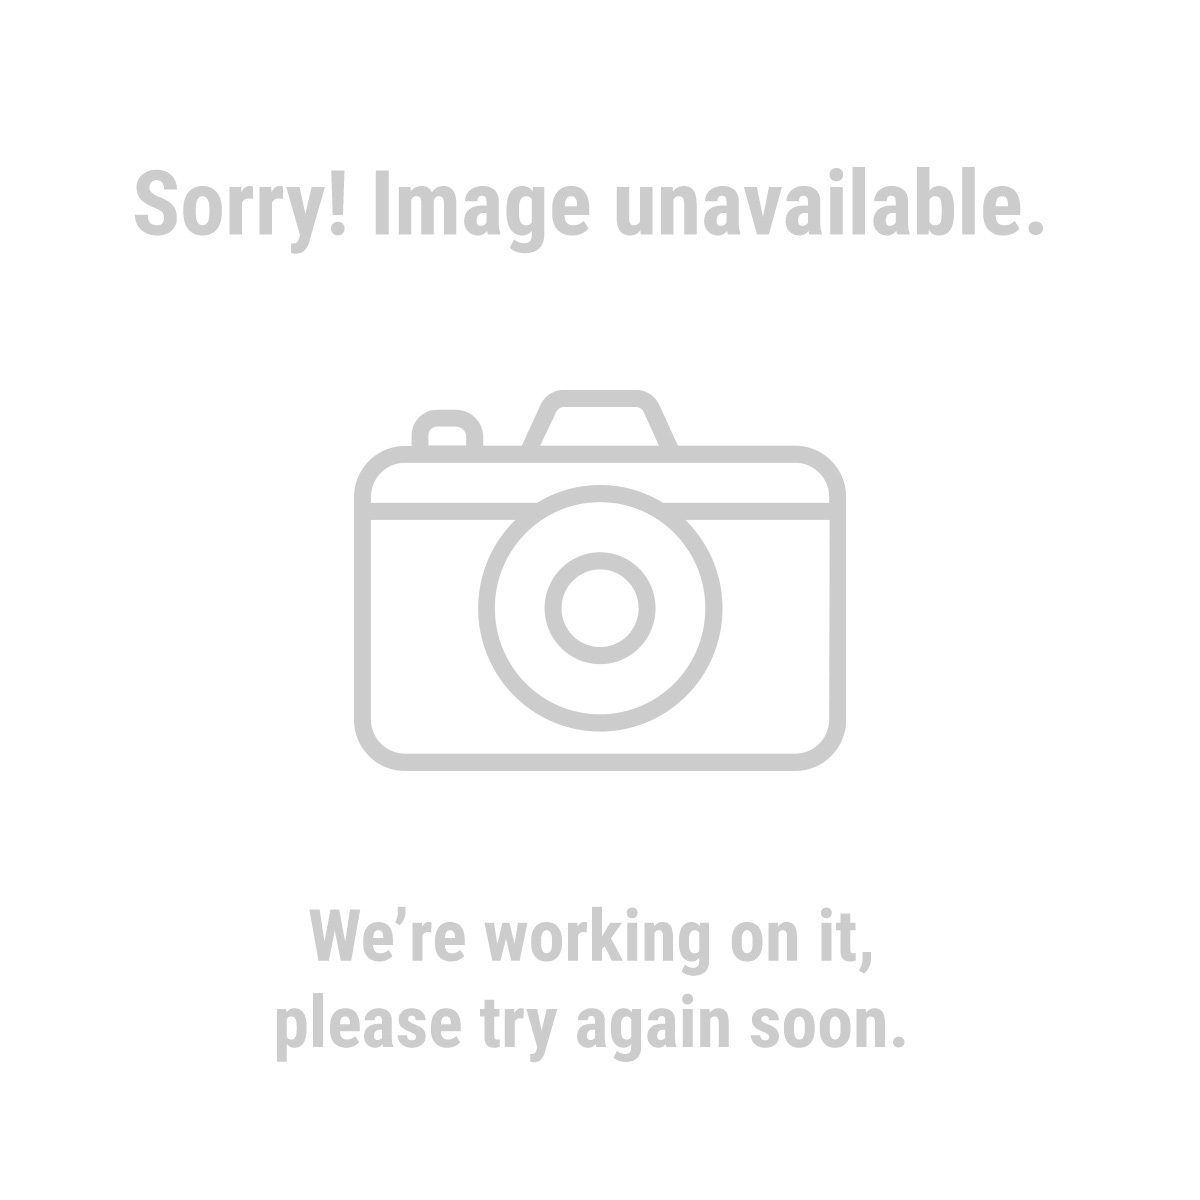 98052 Money Miser Coin Sorter